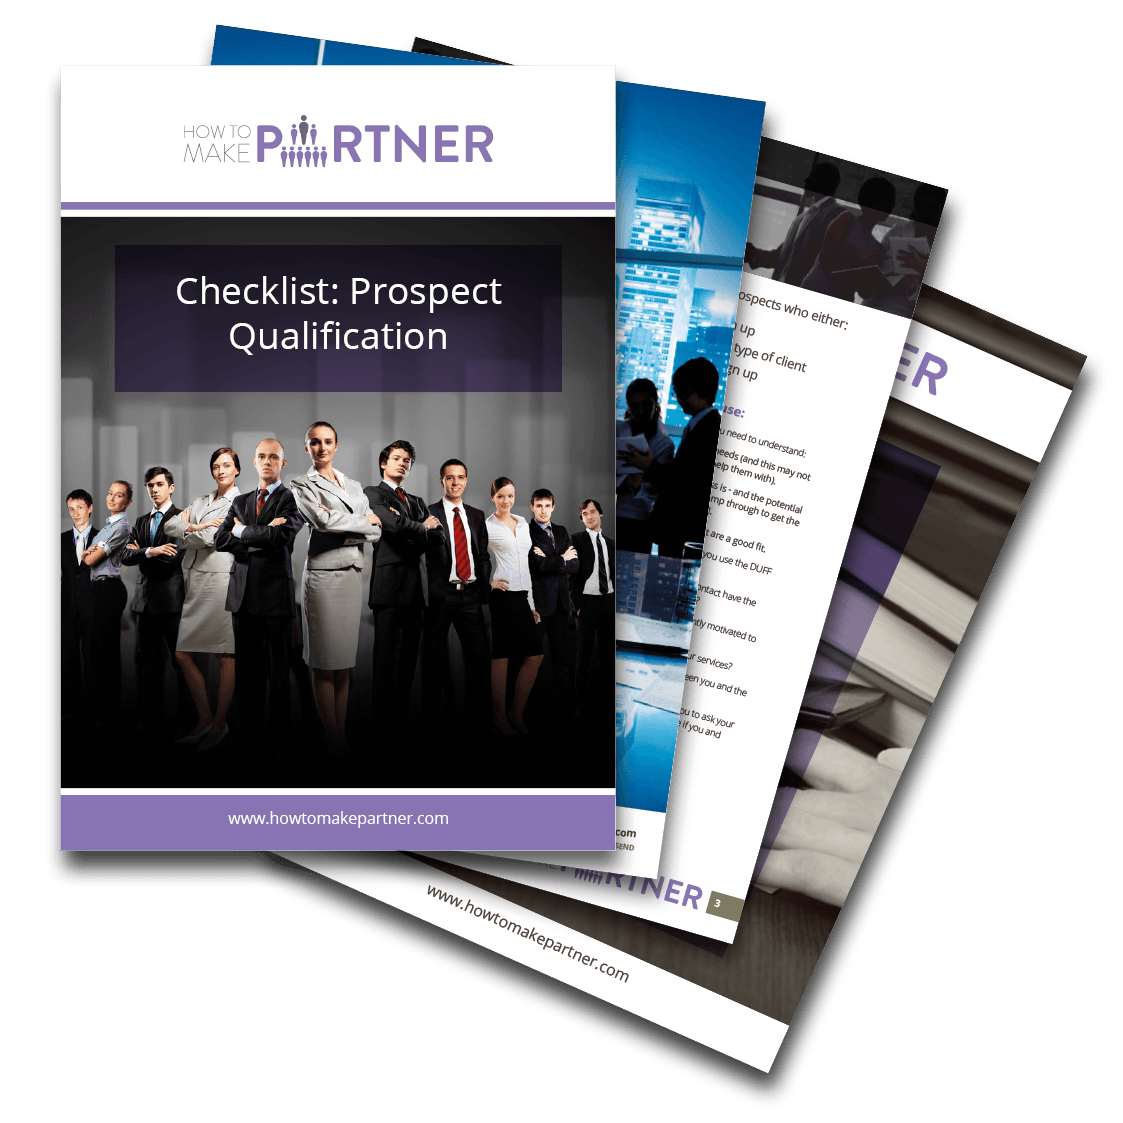 Checklist: Prospect Qualification